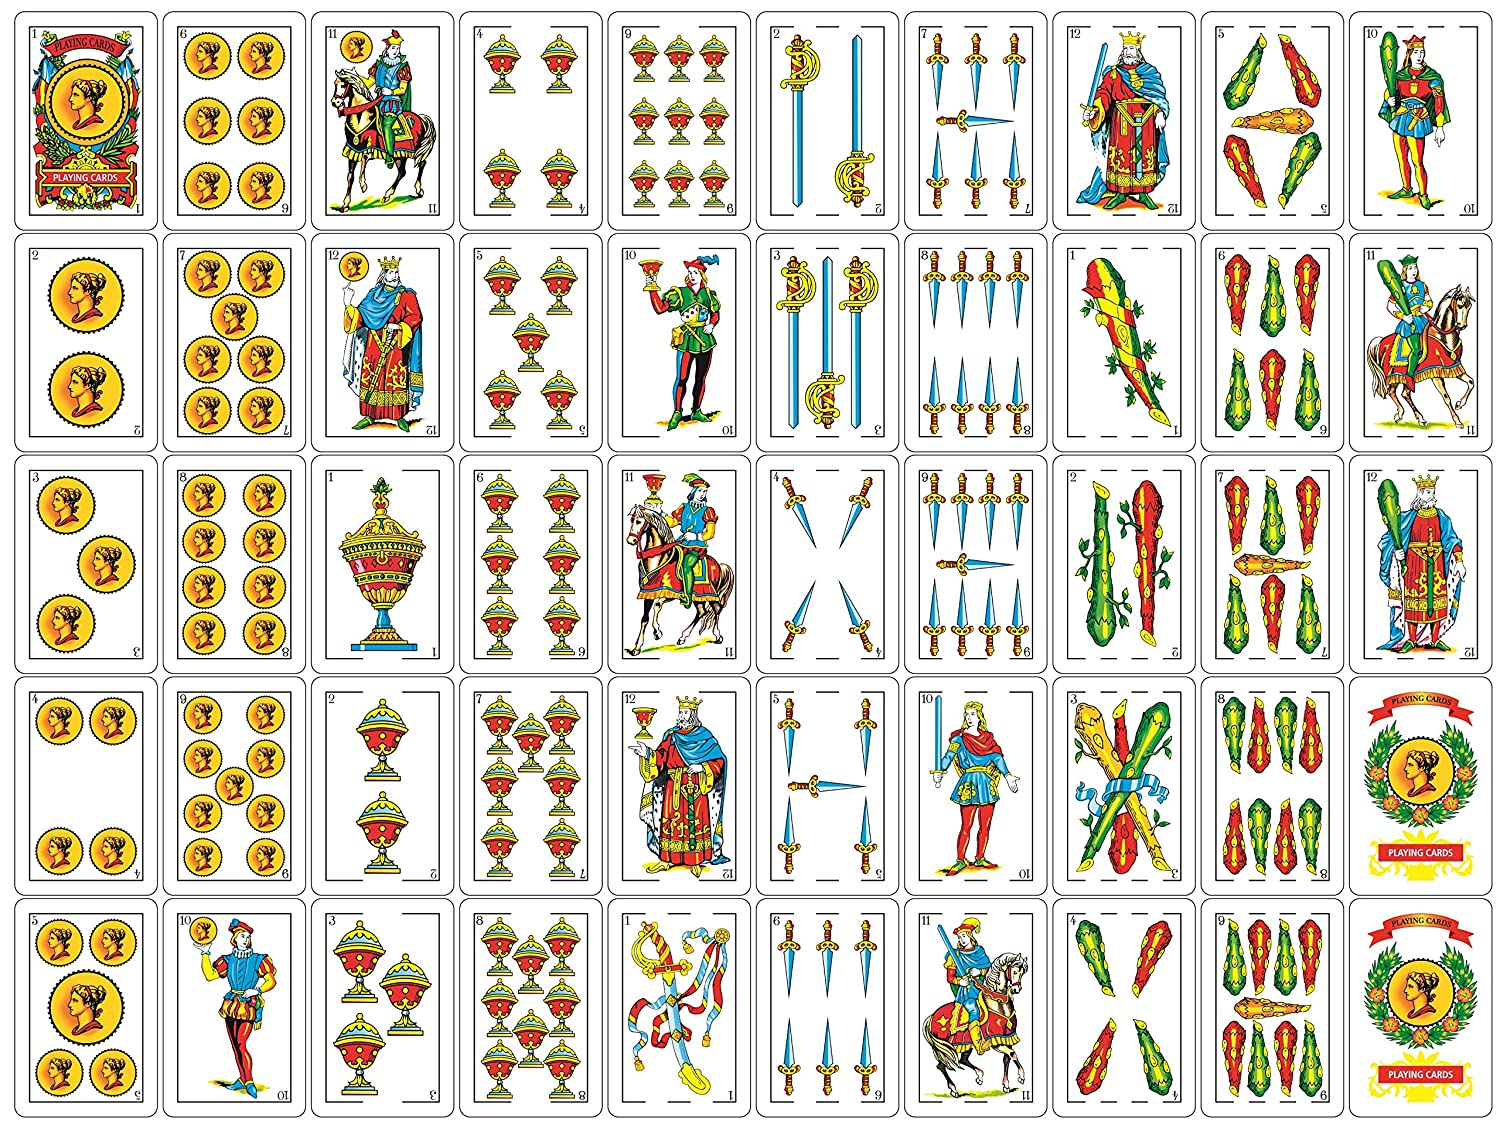 Liliane Collection Spanish Playing Cards - Full Deck with 50 Cards - Smooth Plastic Coated Cards – cartas Barajas o Naipes Espanoles in a Beautifully ...